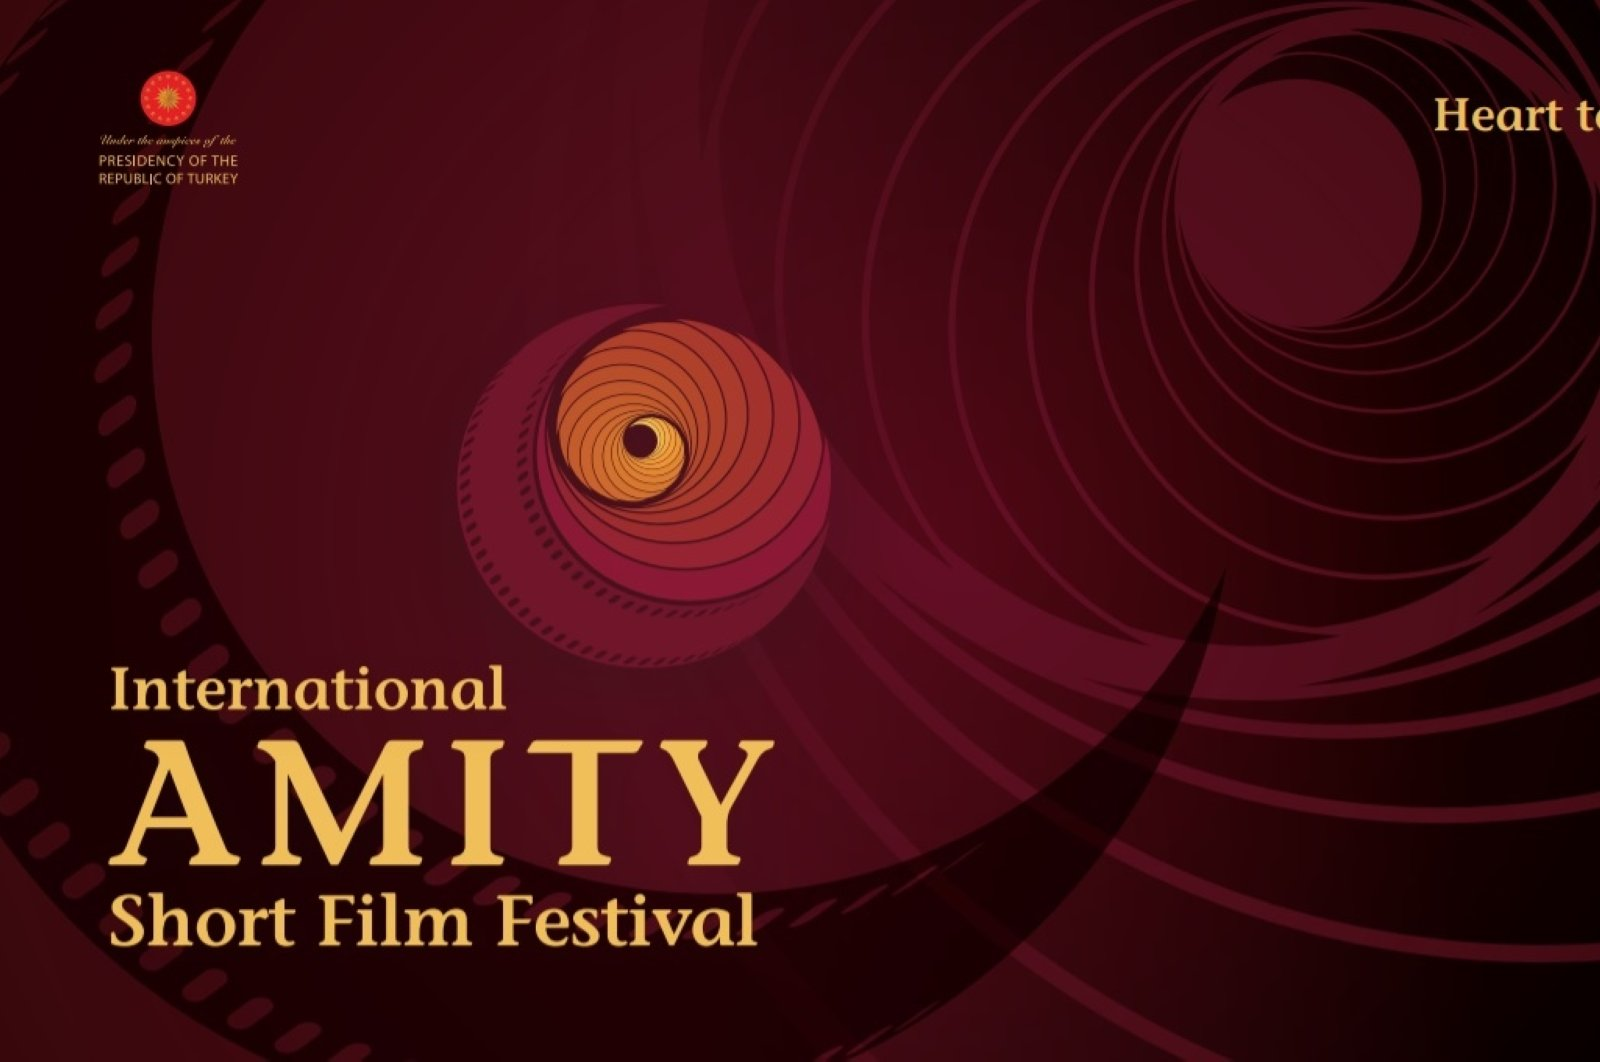 A banner of the International Amity Short Film Festival. (Courtesy of Amity Short Film Festival)